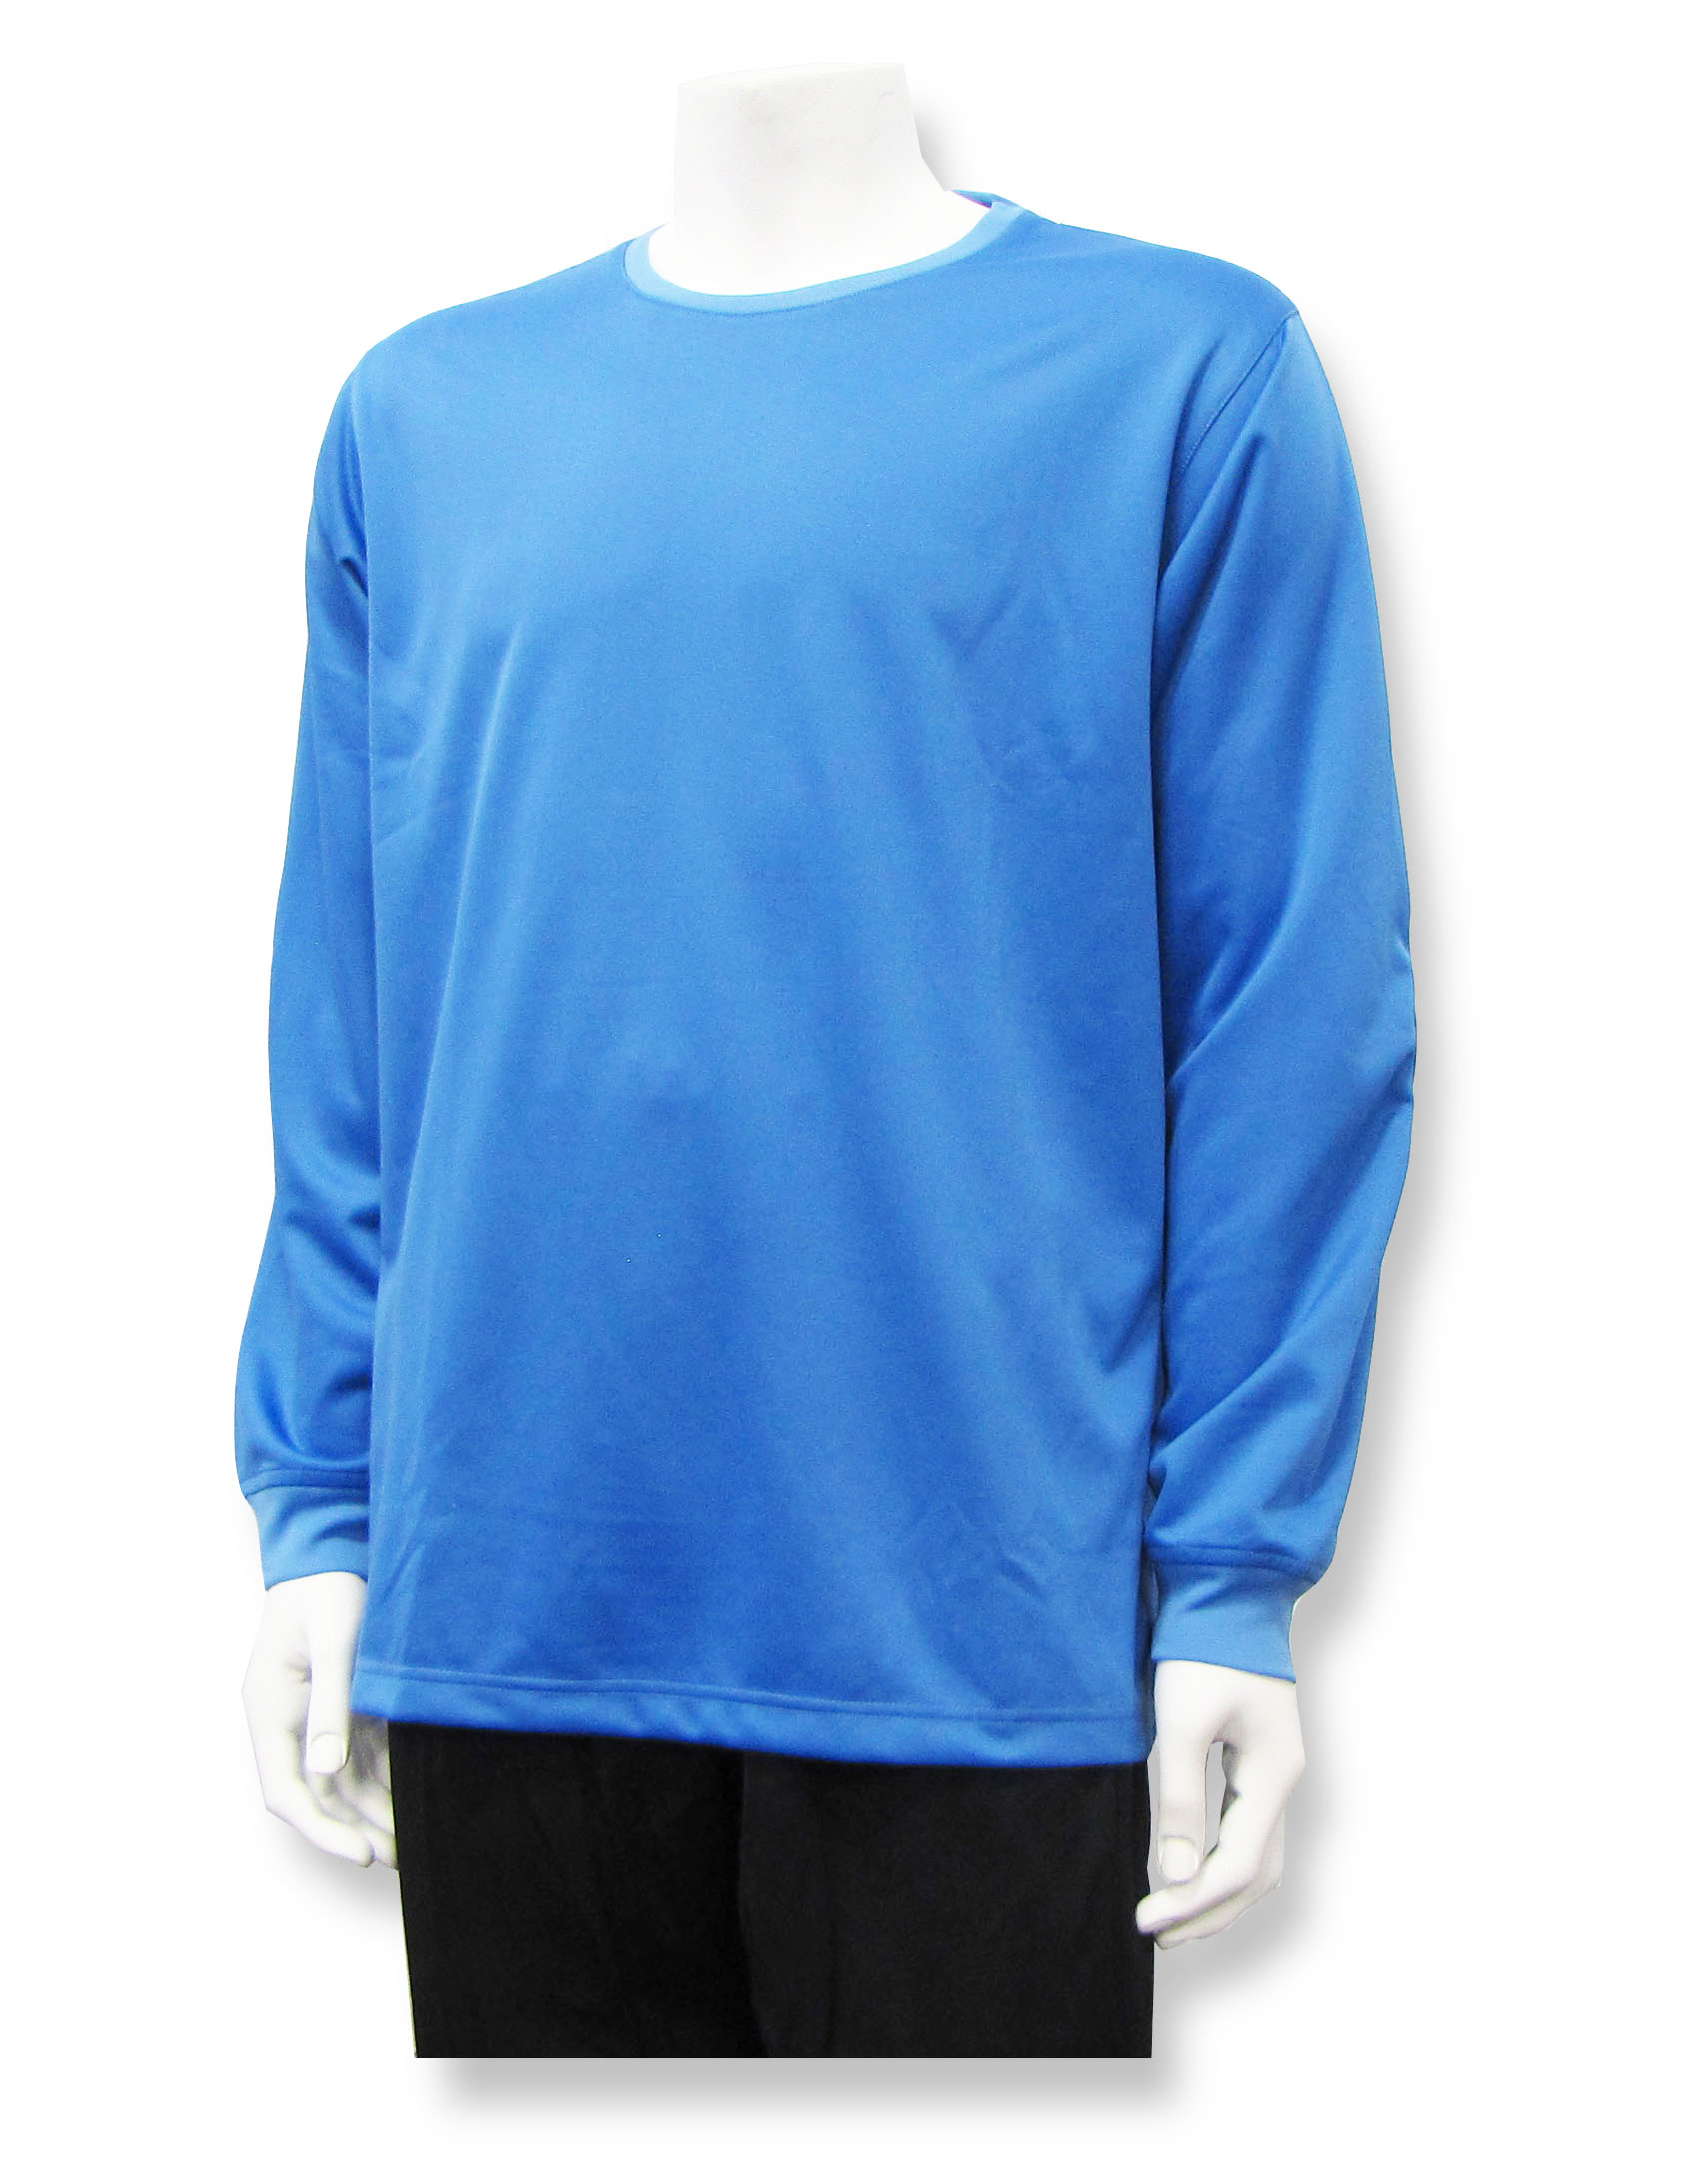 Long sleeve soccer goalie jersey in Columbia Blue by Code Four Athletics